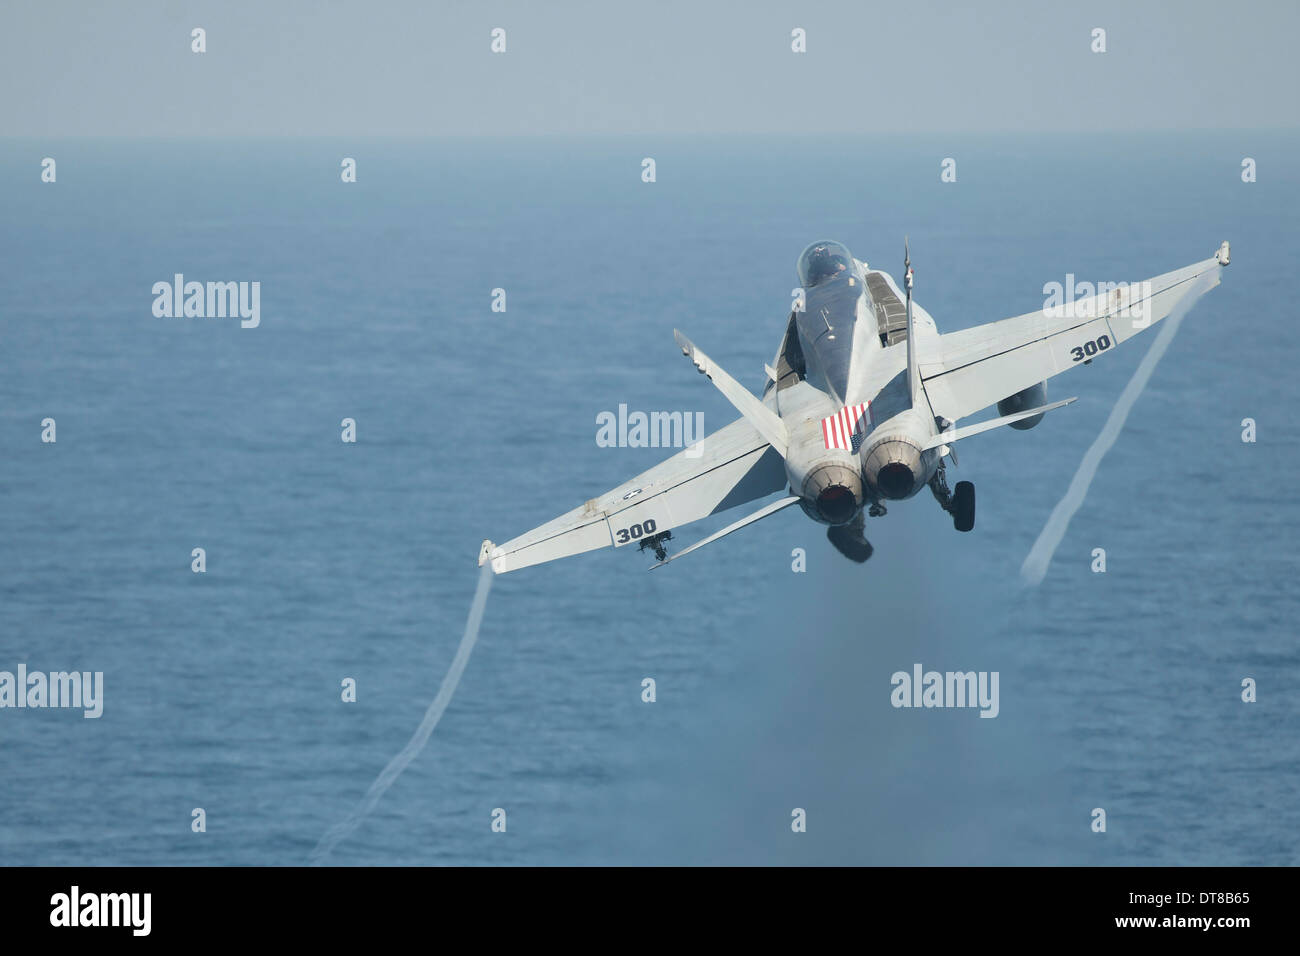 An F/A-18C Hornet taking off. - Stock Image